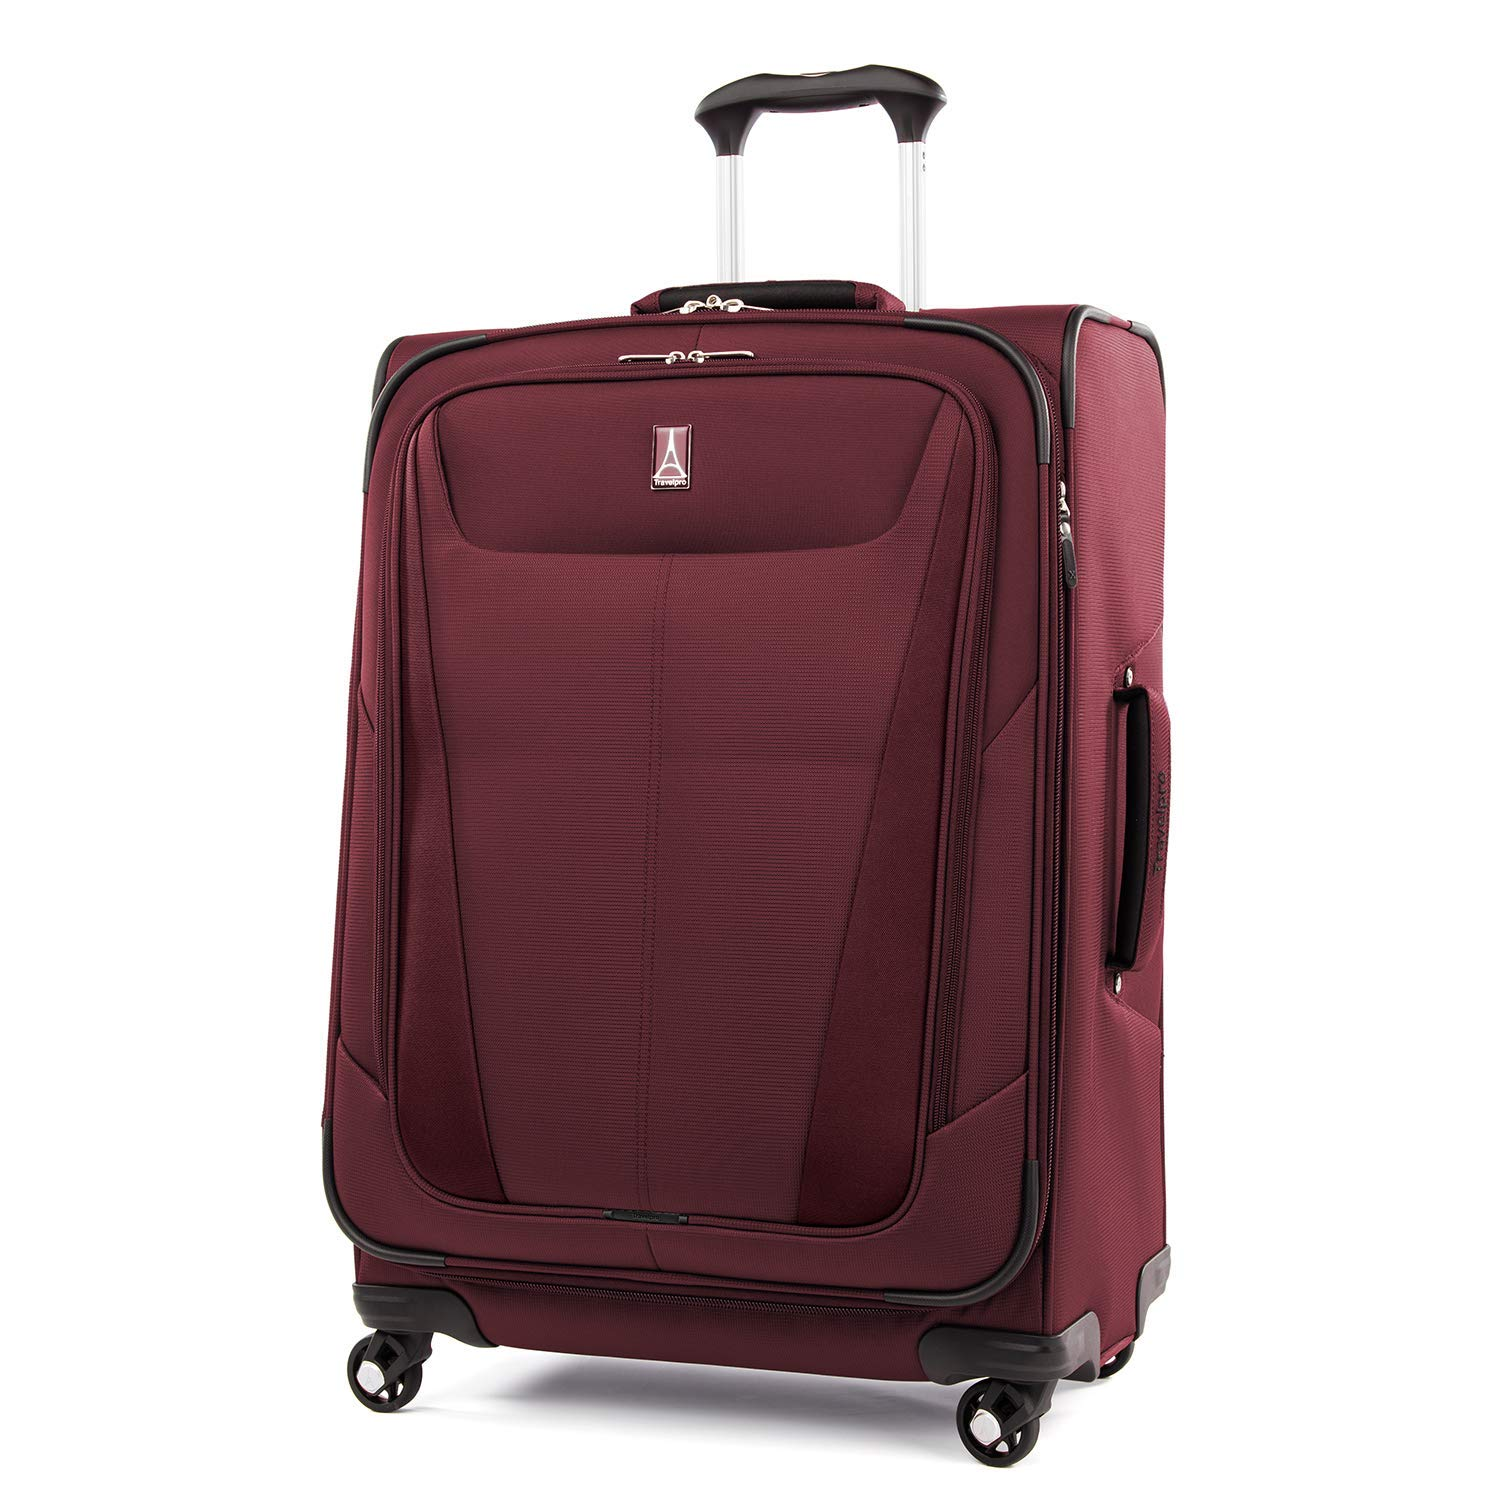 Travelpro Checked Medium 25'', Burgundy by Travelpro